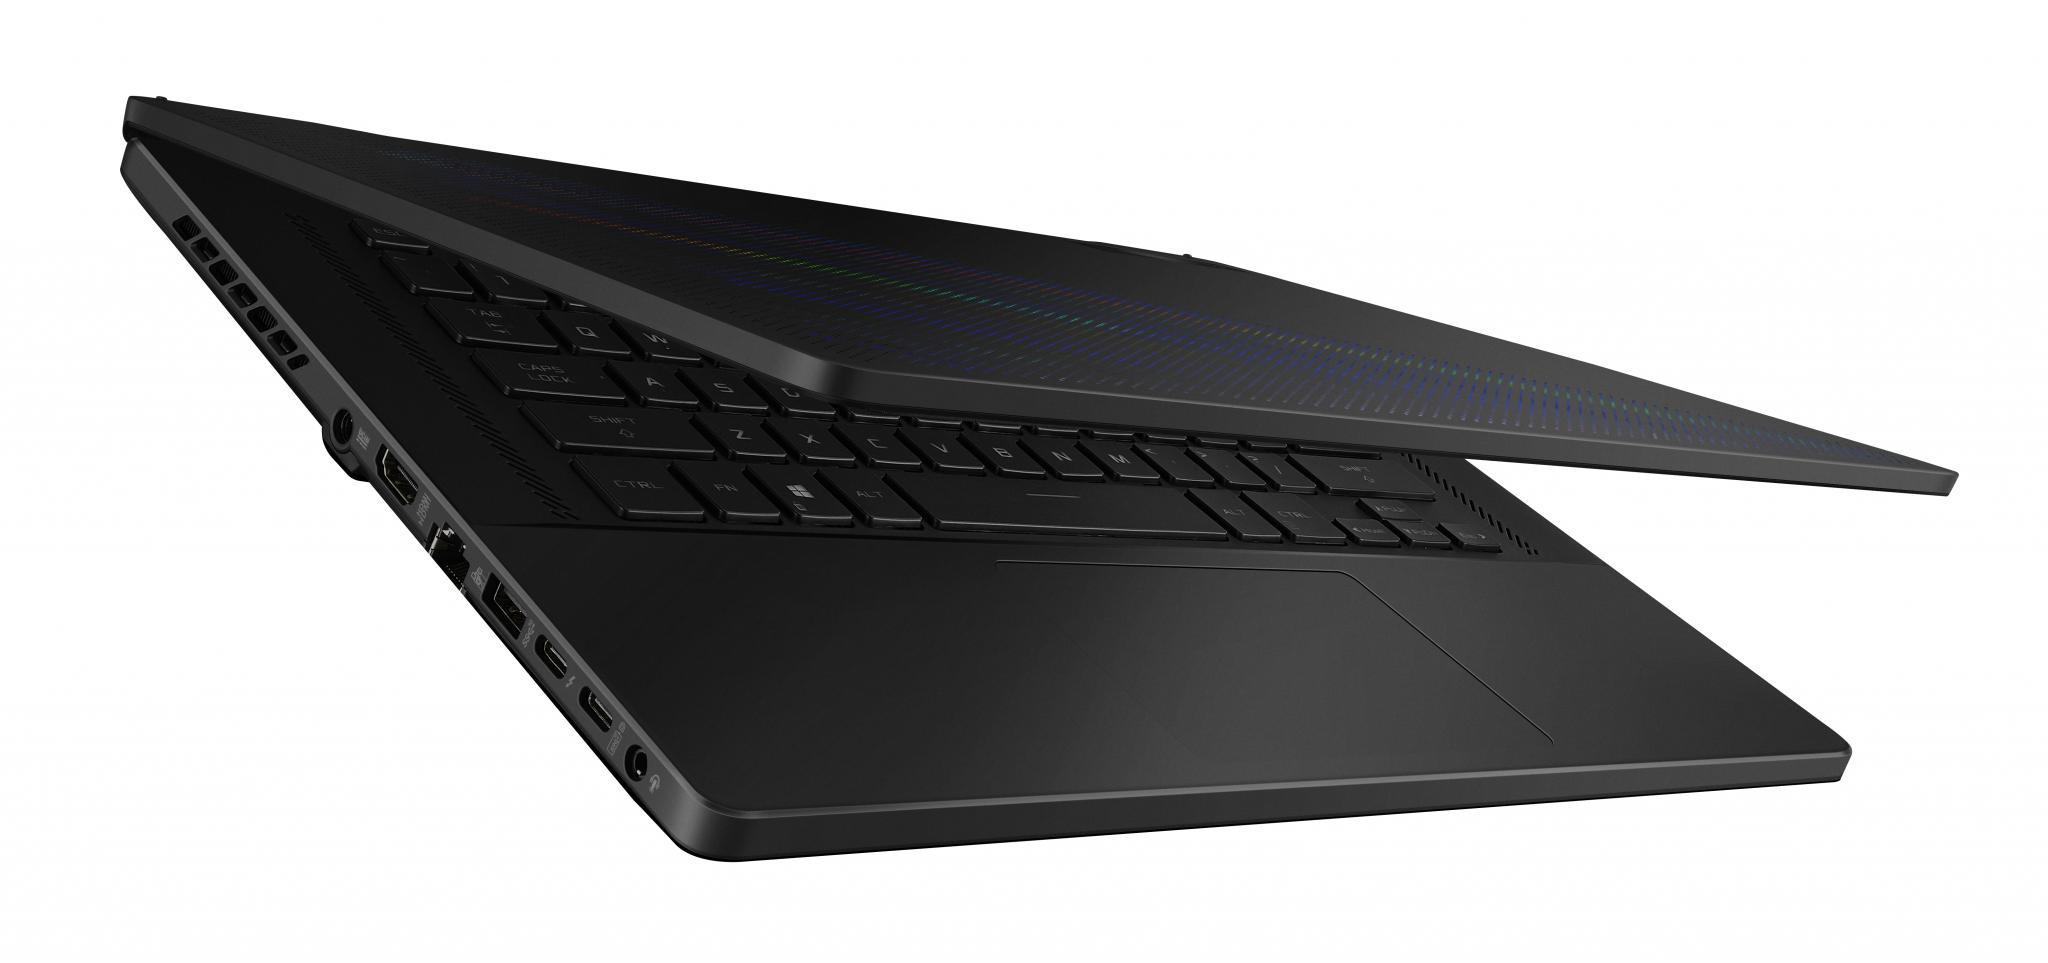 Laptop Gaming ASUS ROG Zephyrus M16 GU603HR-K8005, 16-inch, WQXGA (2560 x 1600) 16:10, Anti-glare display, IPS-level Panel, Intel® Core™ i7-11800HProcessor2.3GHz(24MCache,upto4.6GHz,8Cores), NVIDIA®GeForceRTX™3070 Laptop GPU, With ROG Boost up to 1390MHz at 80W (100W with Dynamic - imaginea 5